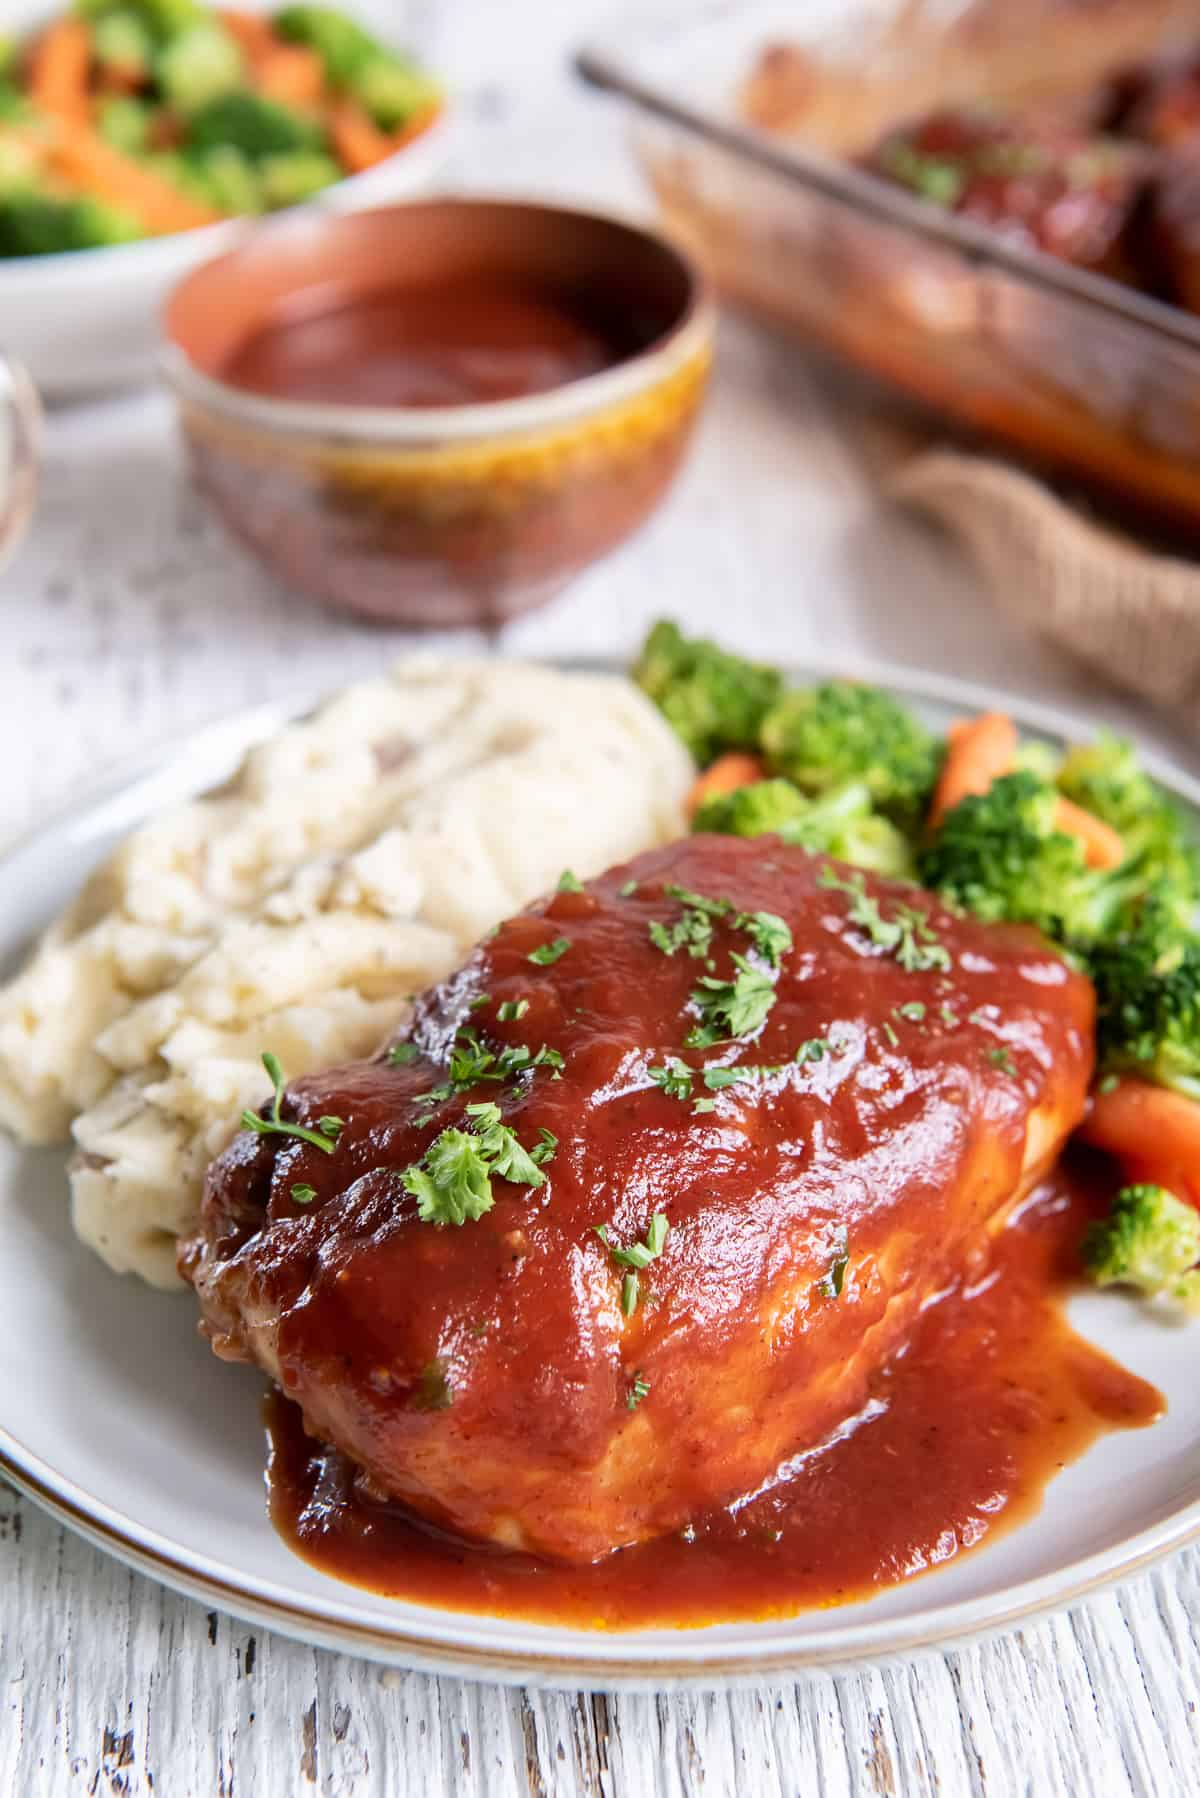 A piece of chicken topped with BBQ sauce on a dinner plate.